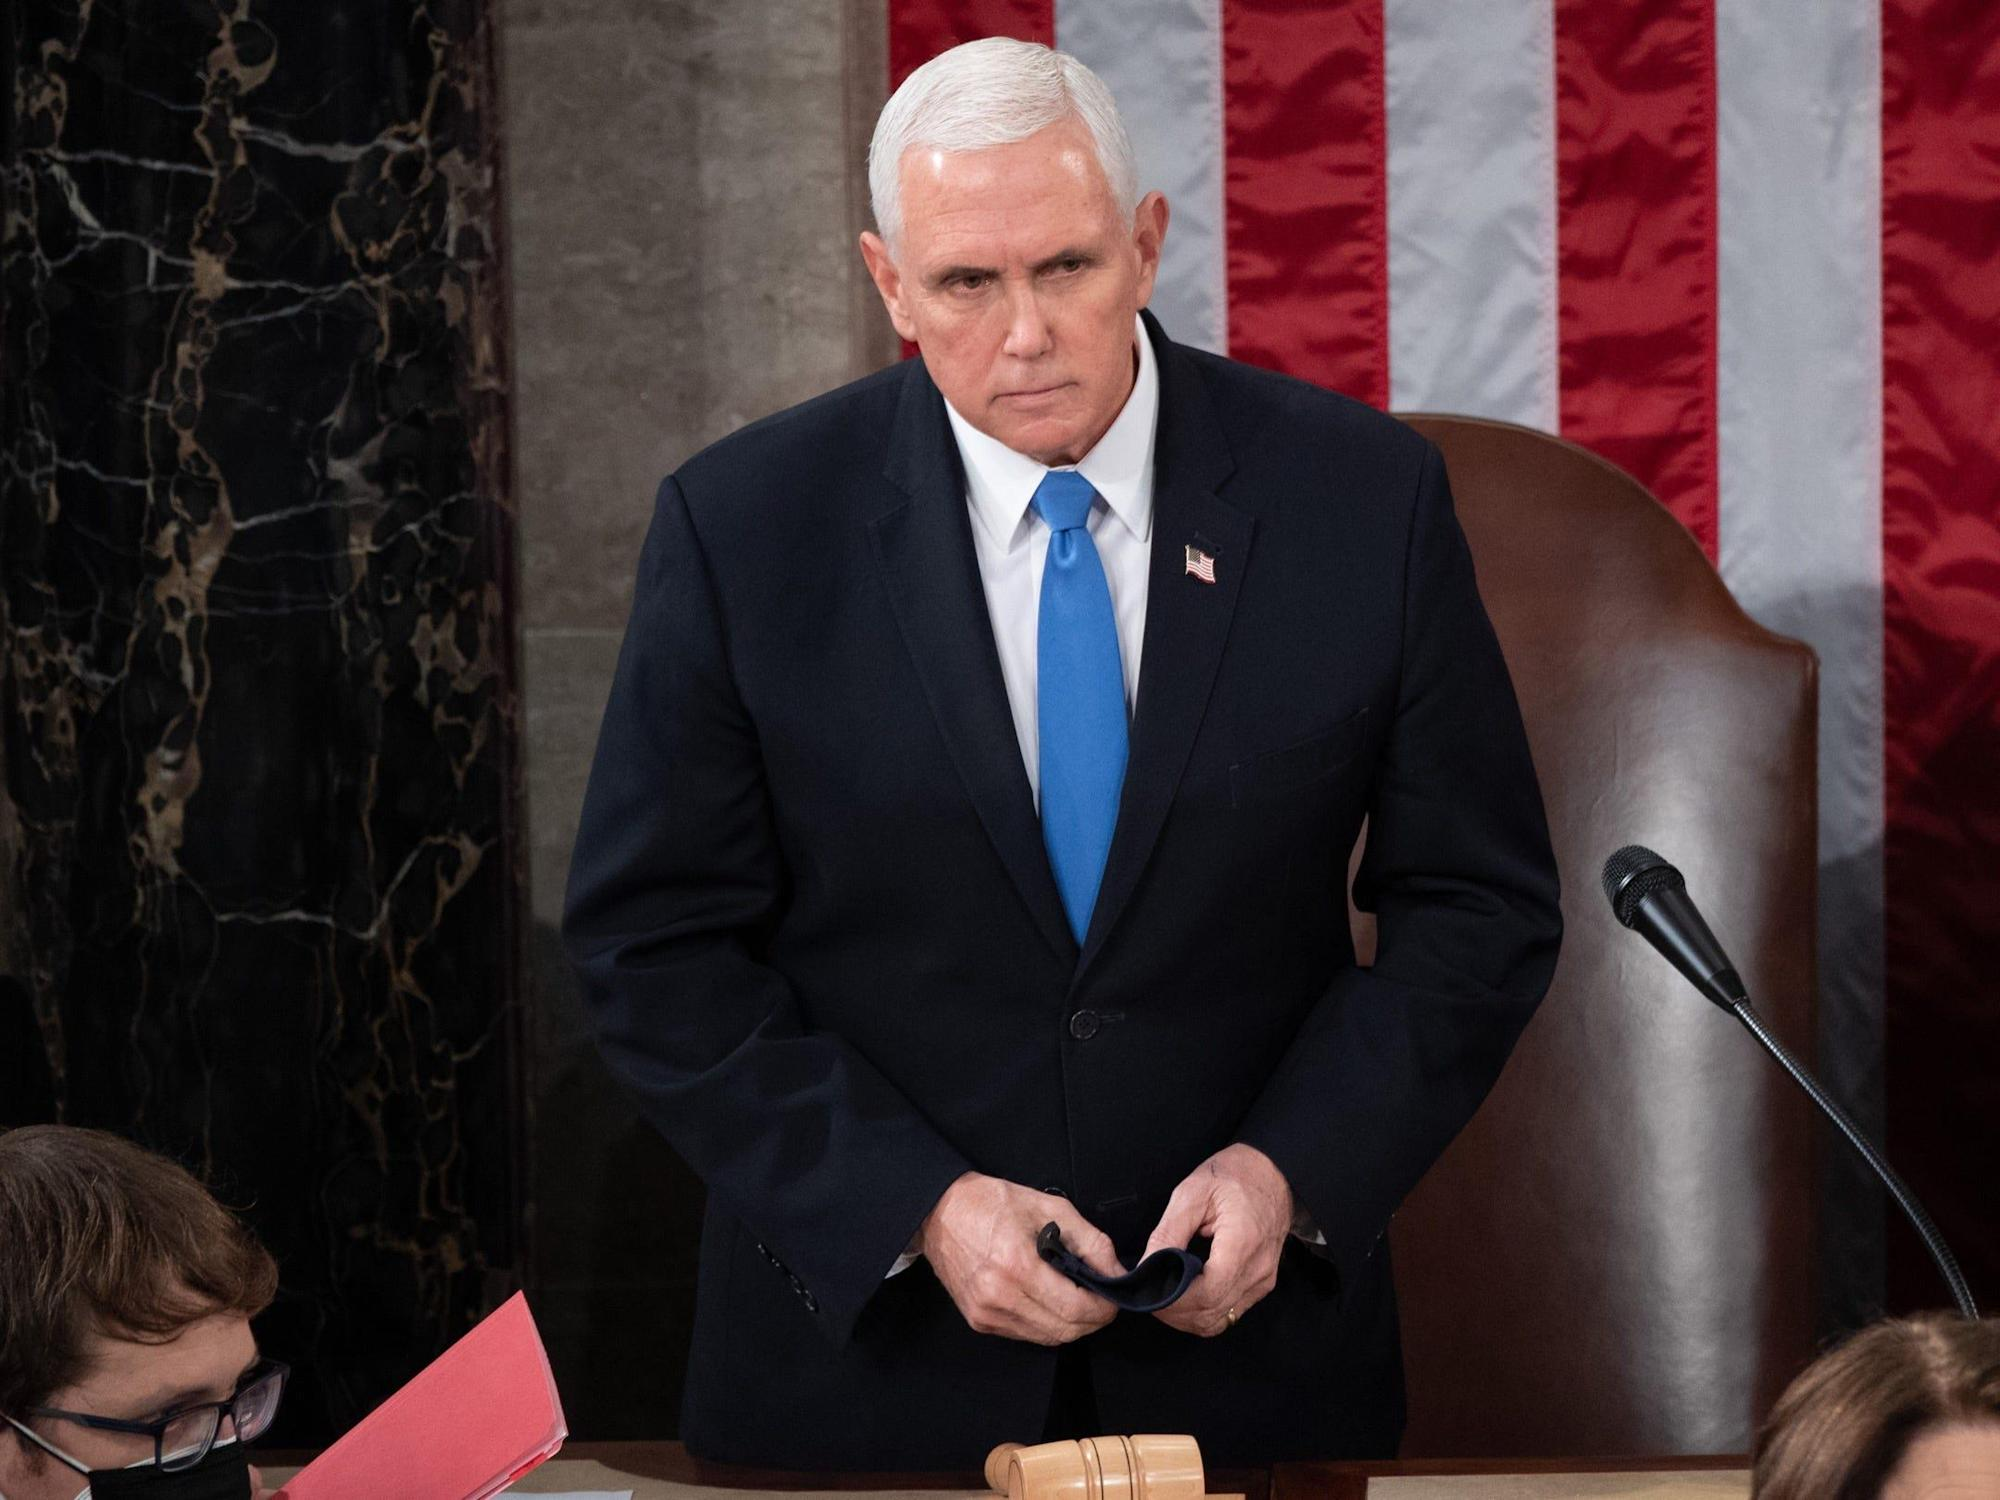 Pence refused to leave the Capitol during the January 6 riot despite Secret Service agents urging him to evacuate, saying, 'I'm not getting in the car': book